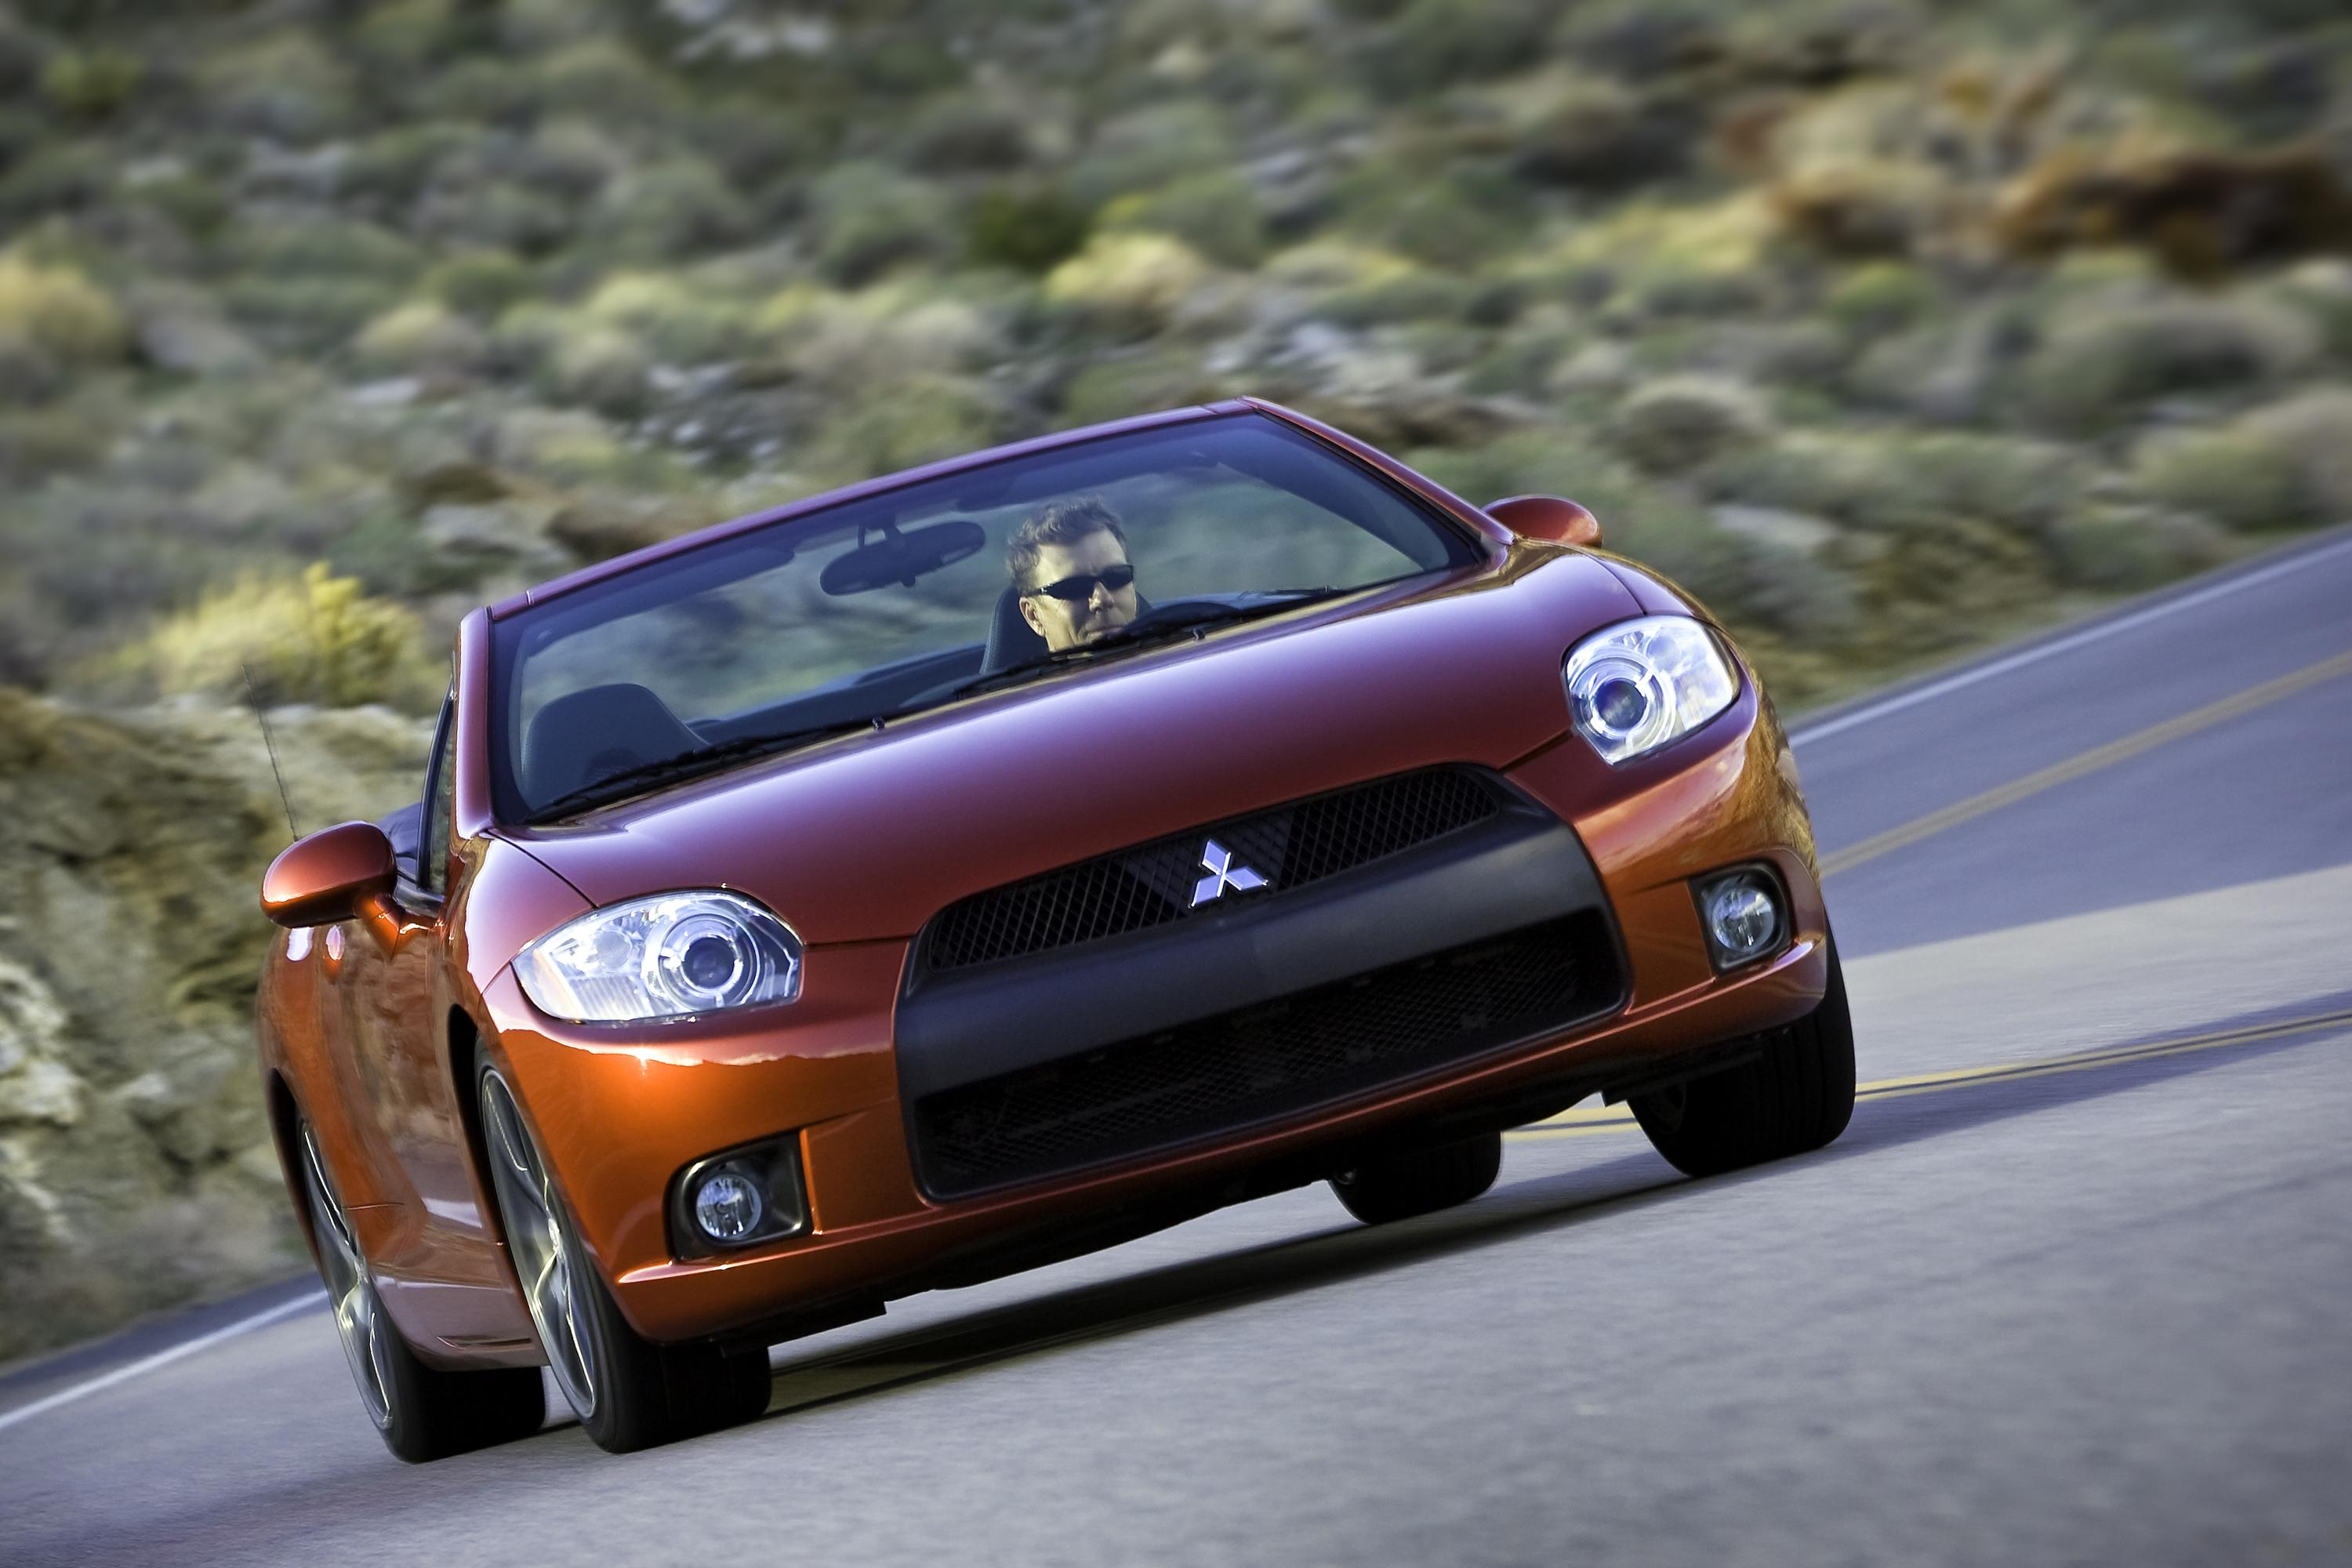 2009 Mitsubishi Eclipse Spyder Top Speed